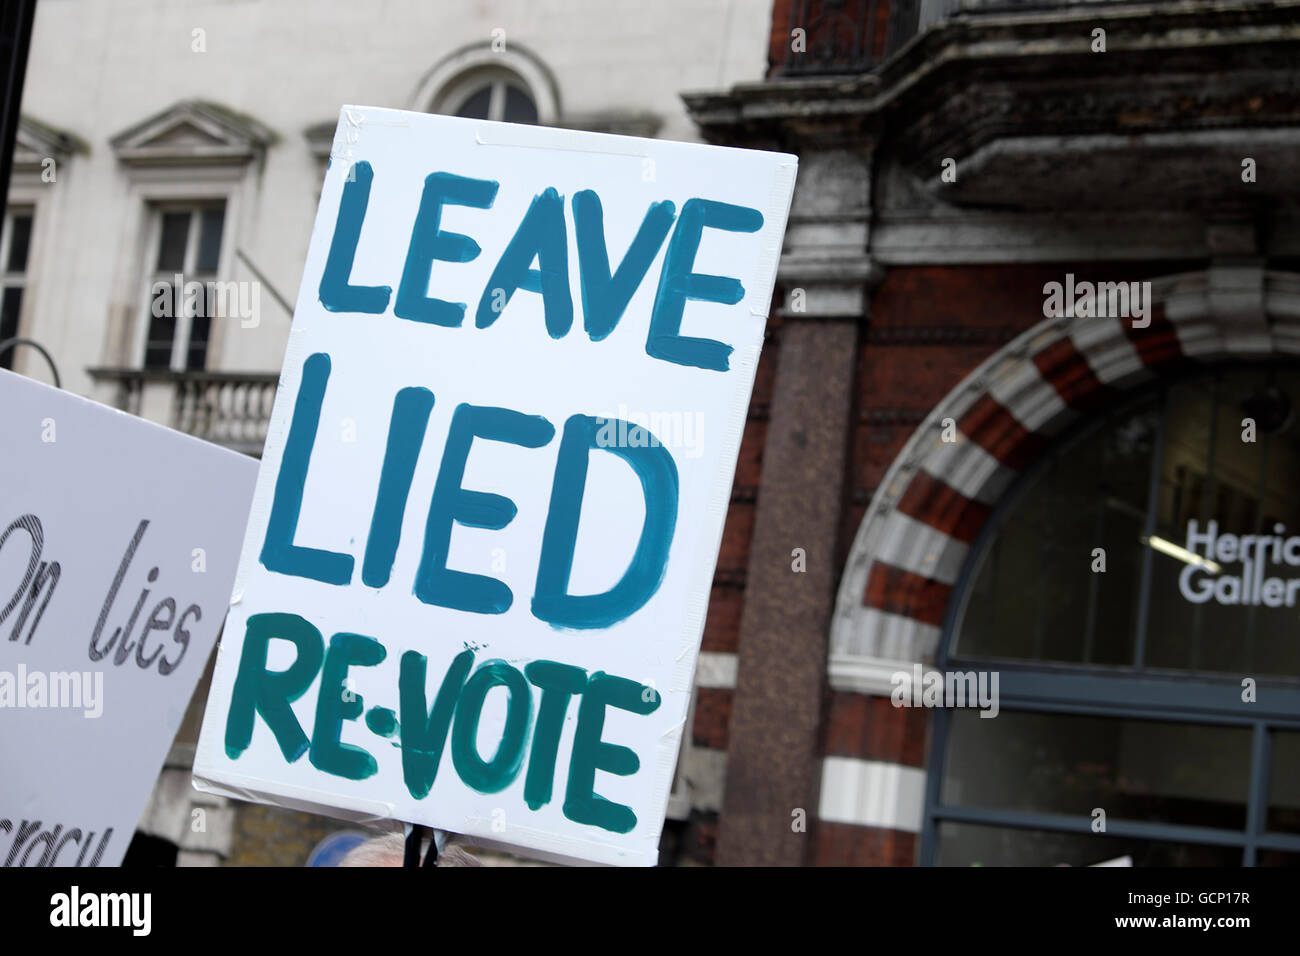 'Leave Lied Re-Vote' poster  demanding another vote  at the Anti Brexit March in London England UK 23 June - Stock Image